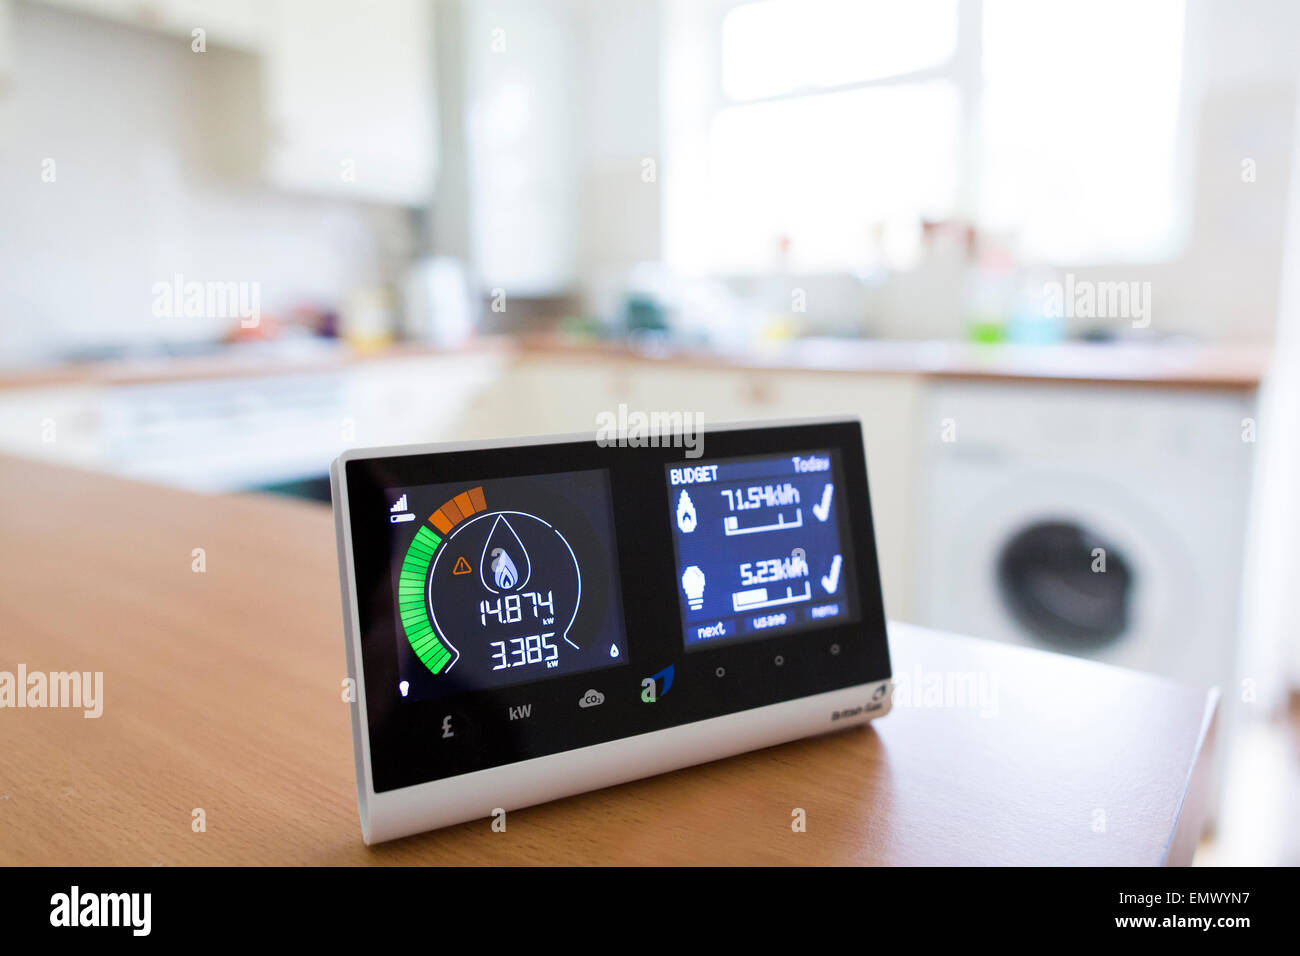 British Gas smart energy monitor in kitchen - Stock Image